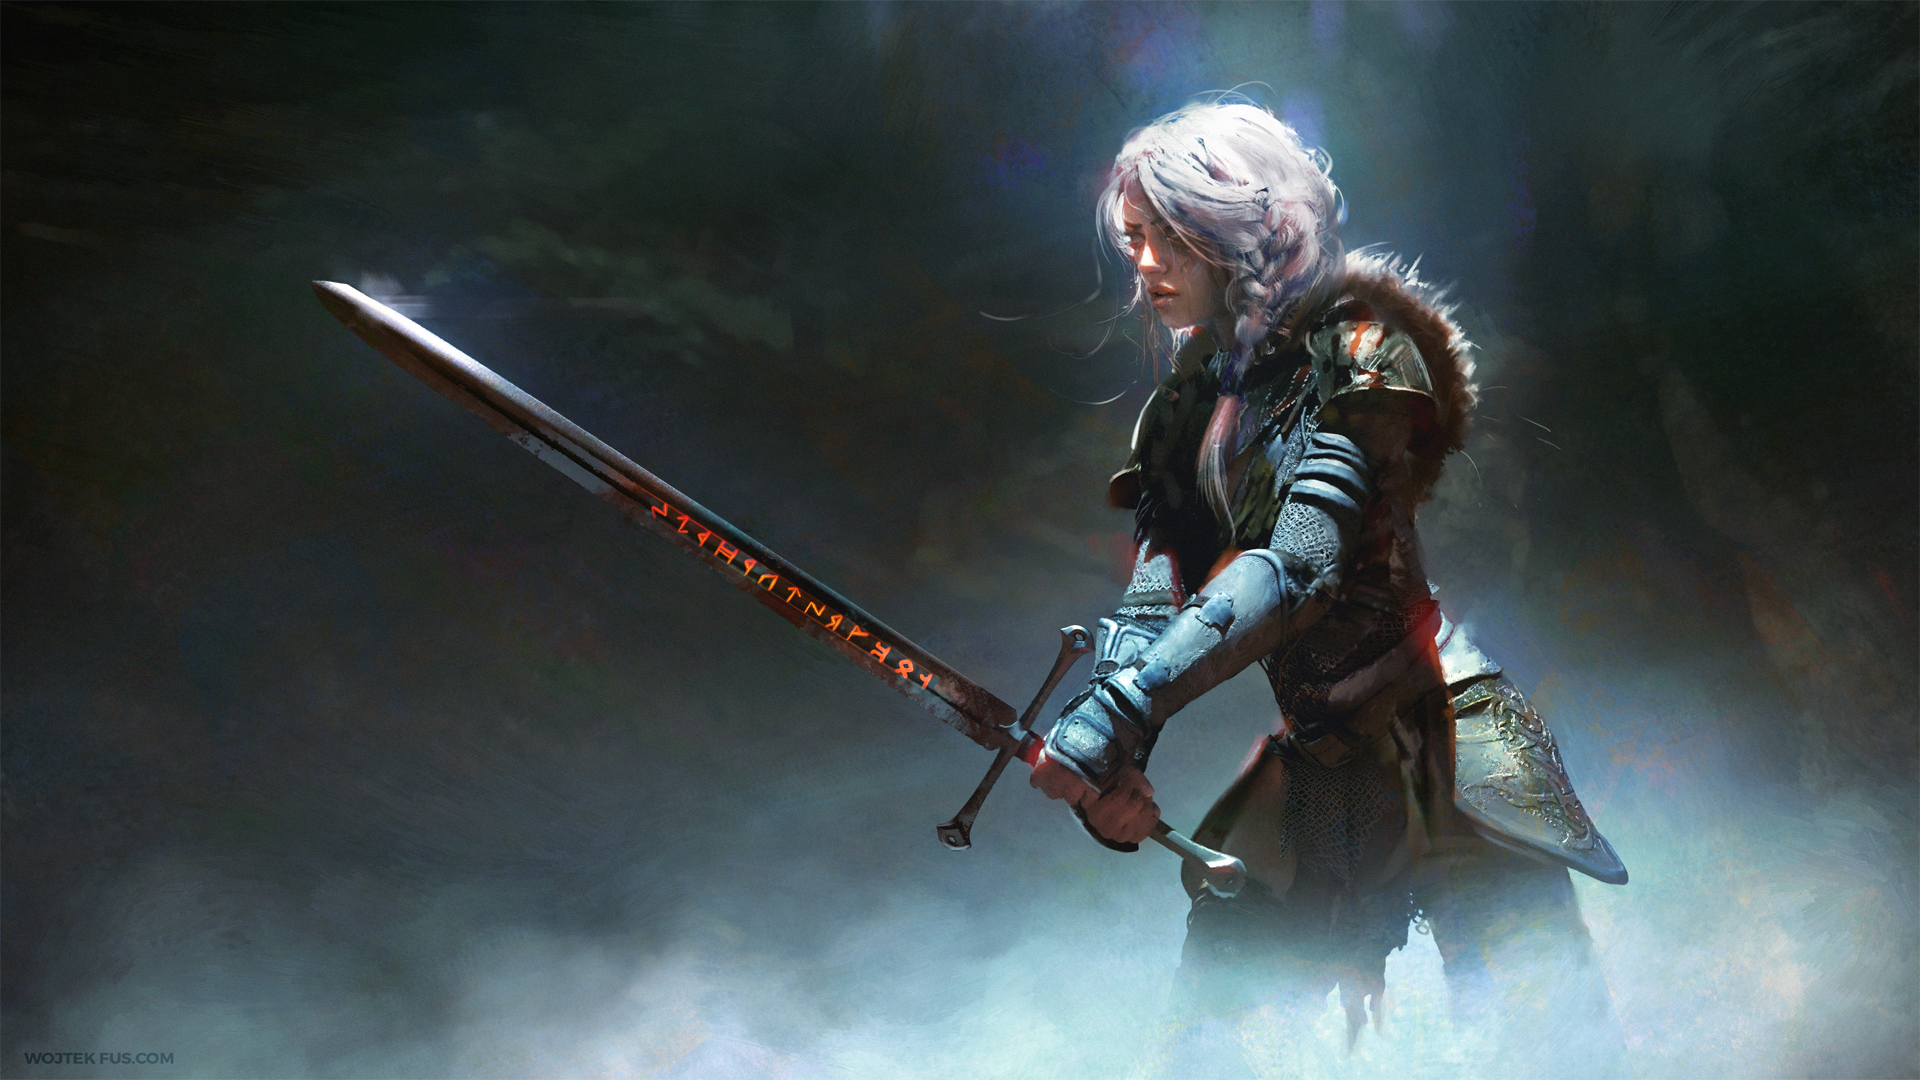 Download Witcher 3 Wallpaper Hd Backgrounds Download Itlcat